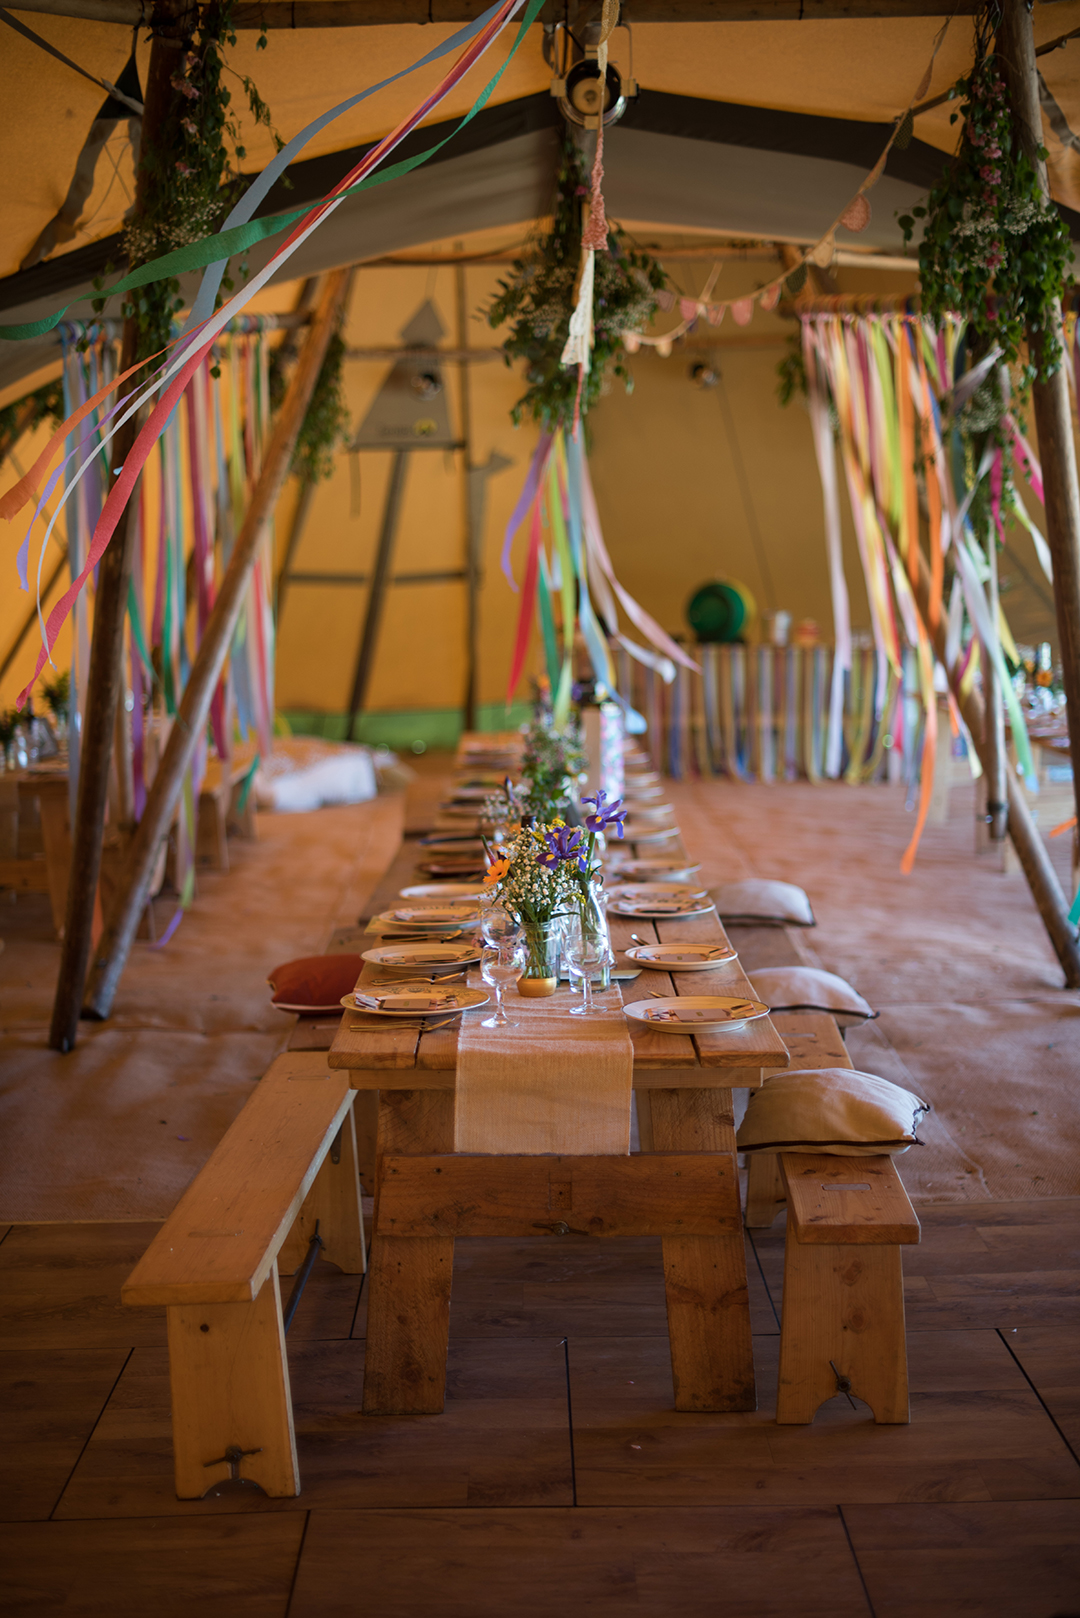 tipi wedding decor ideas for a festival style wedding